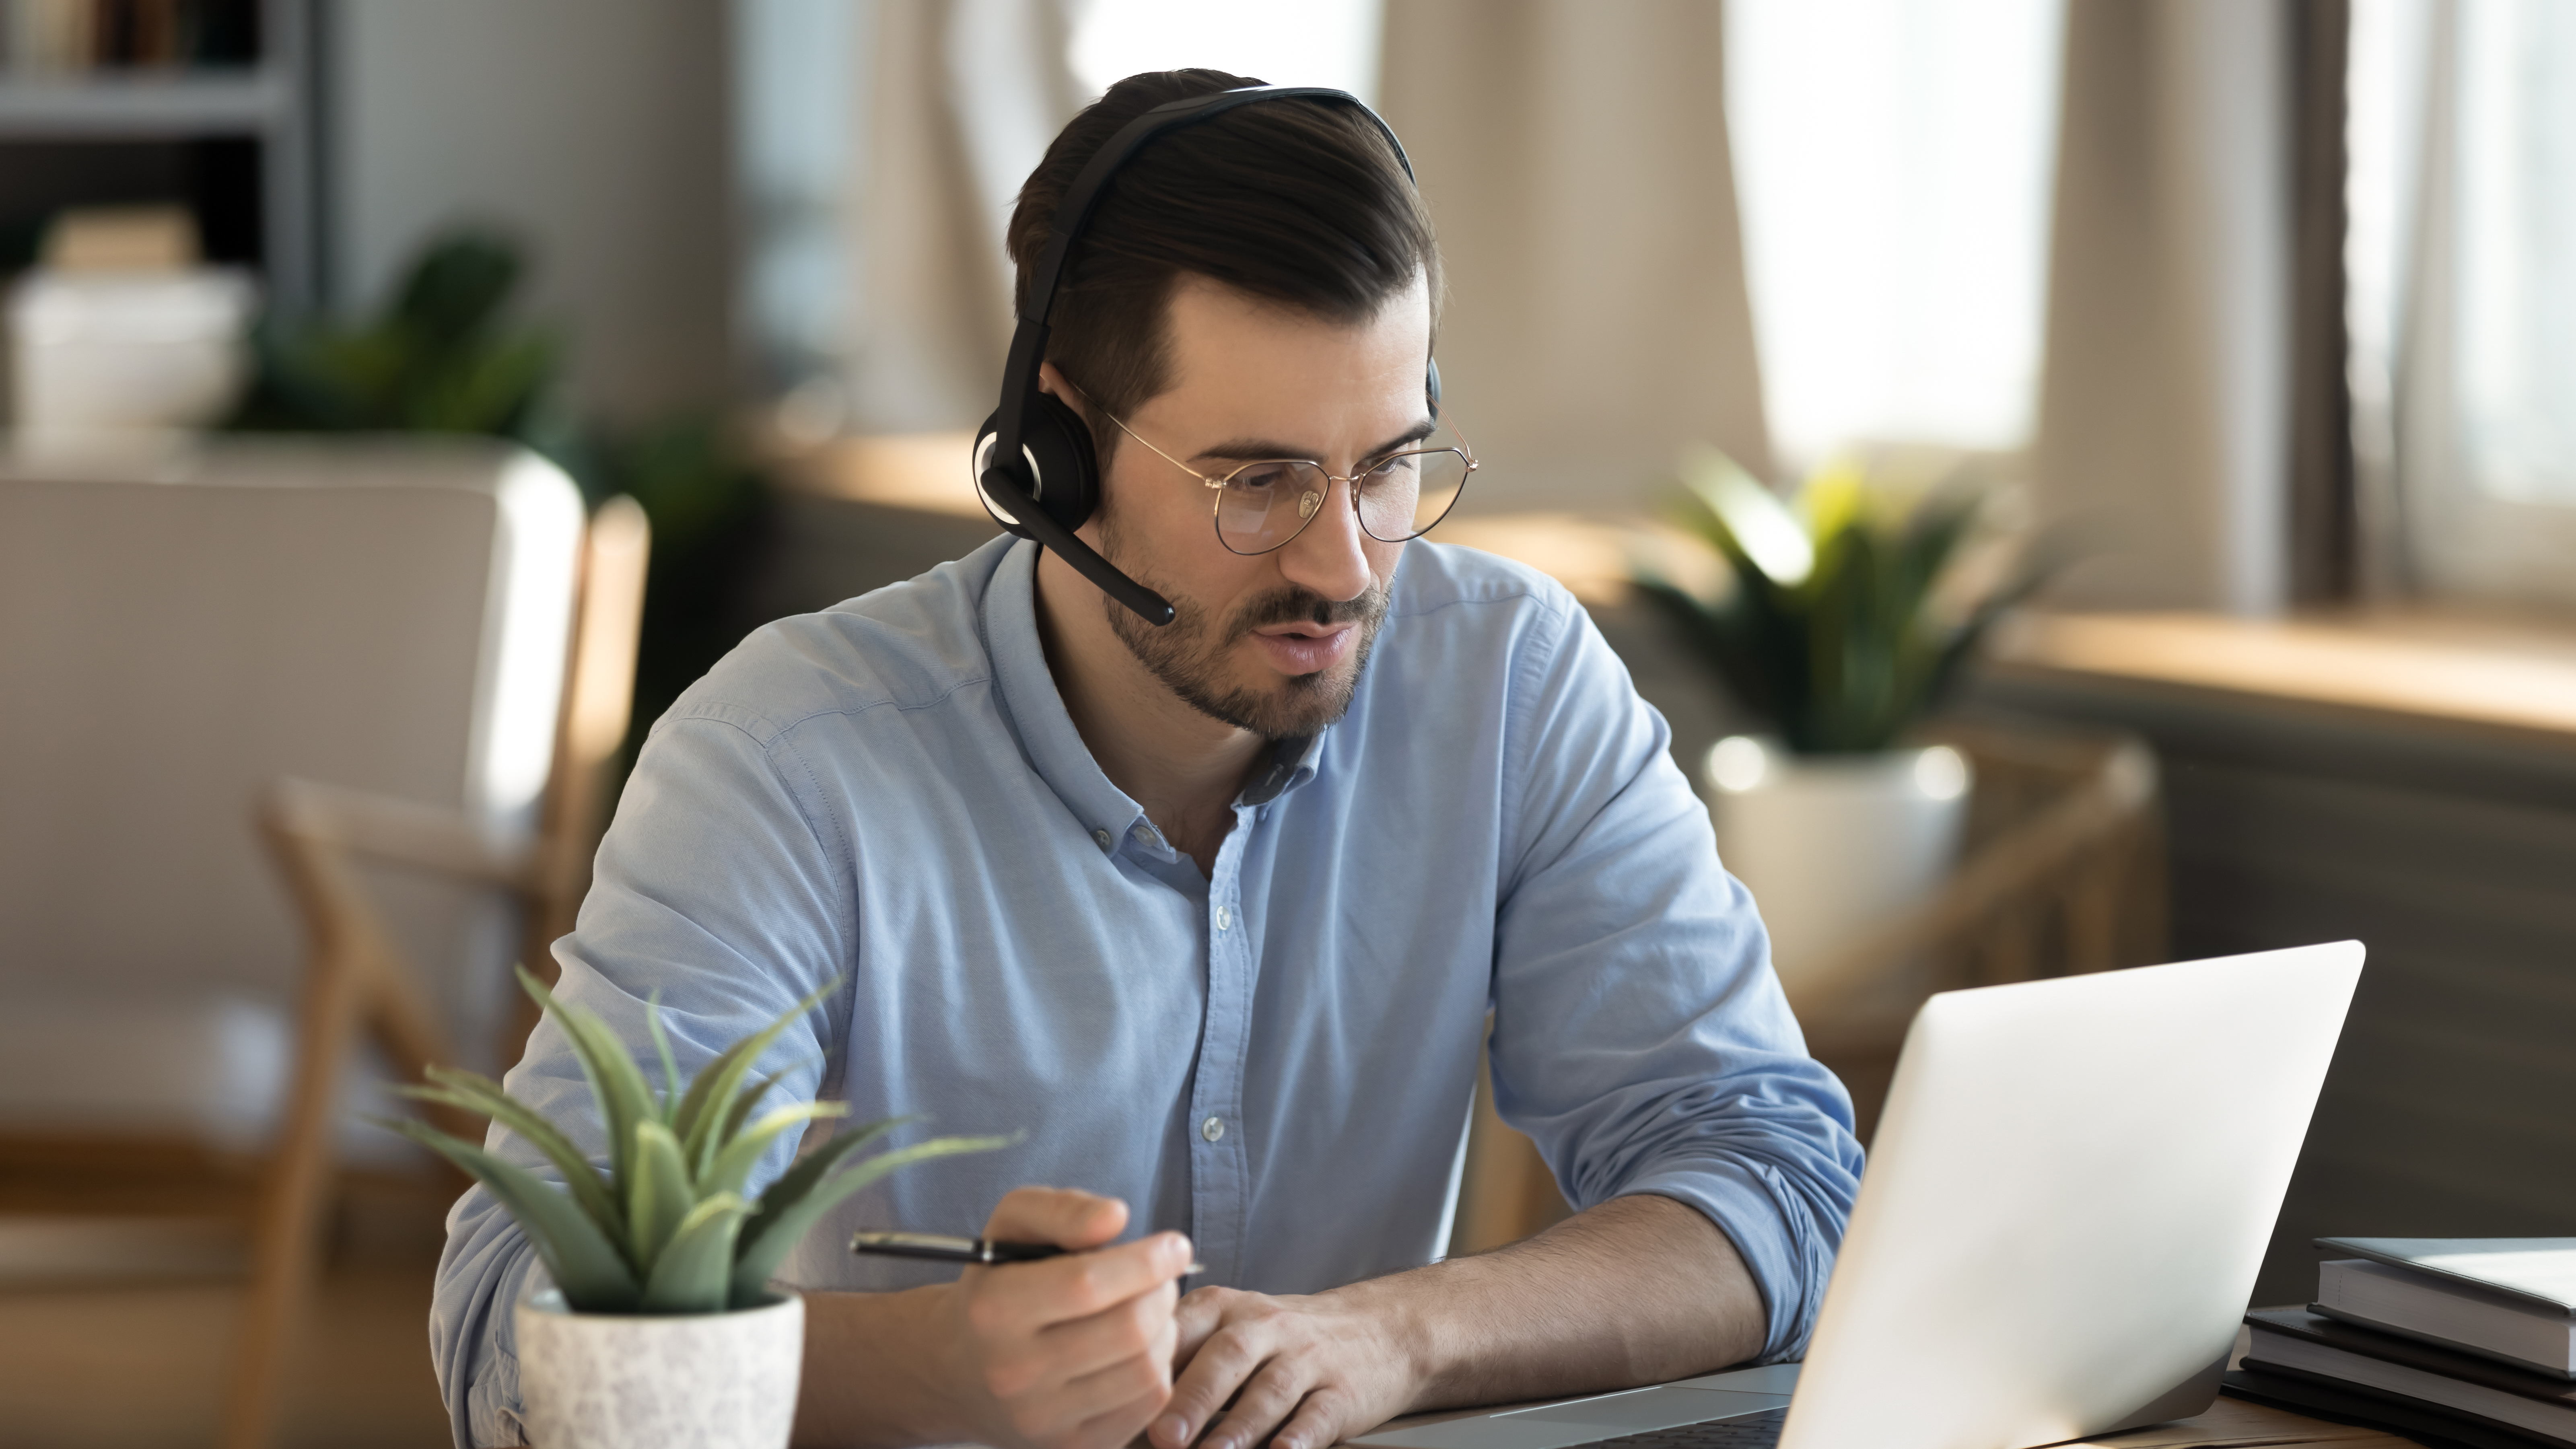 Focused man wearing headset writing notes, studying online